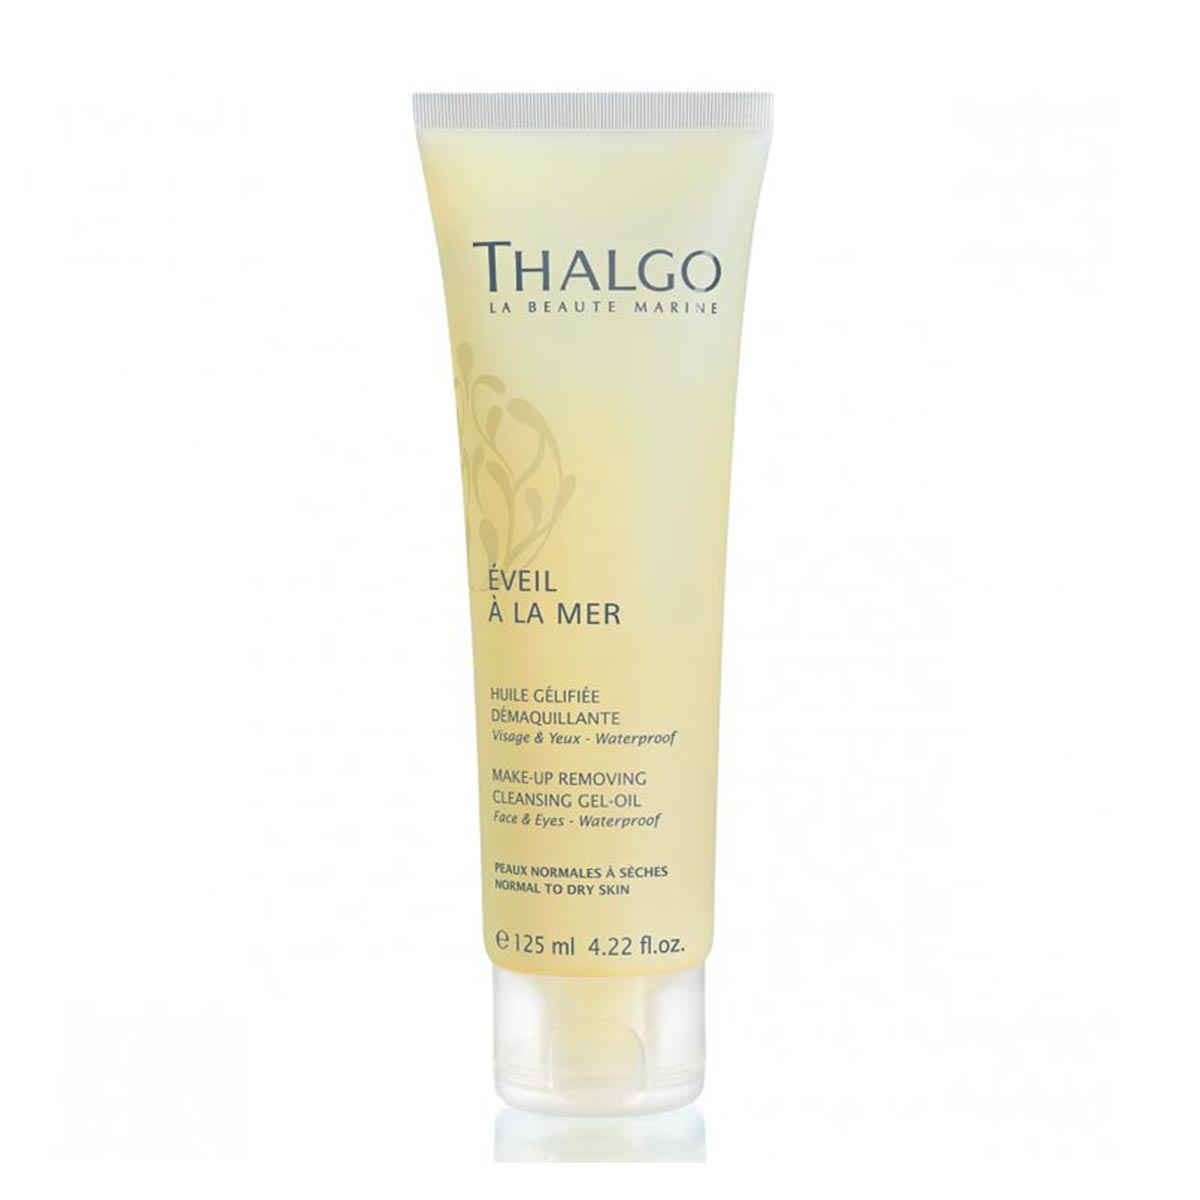 Thalgo eveil a la mer makeup removing cleansing gel oil 125ml